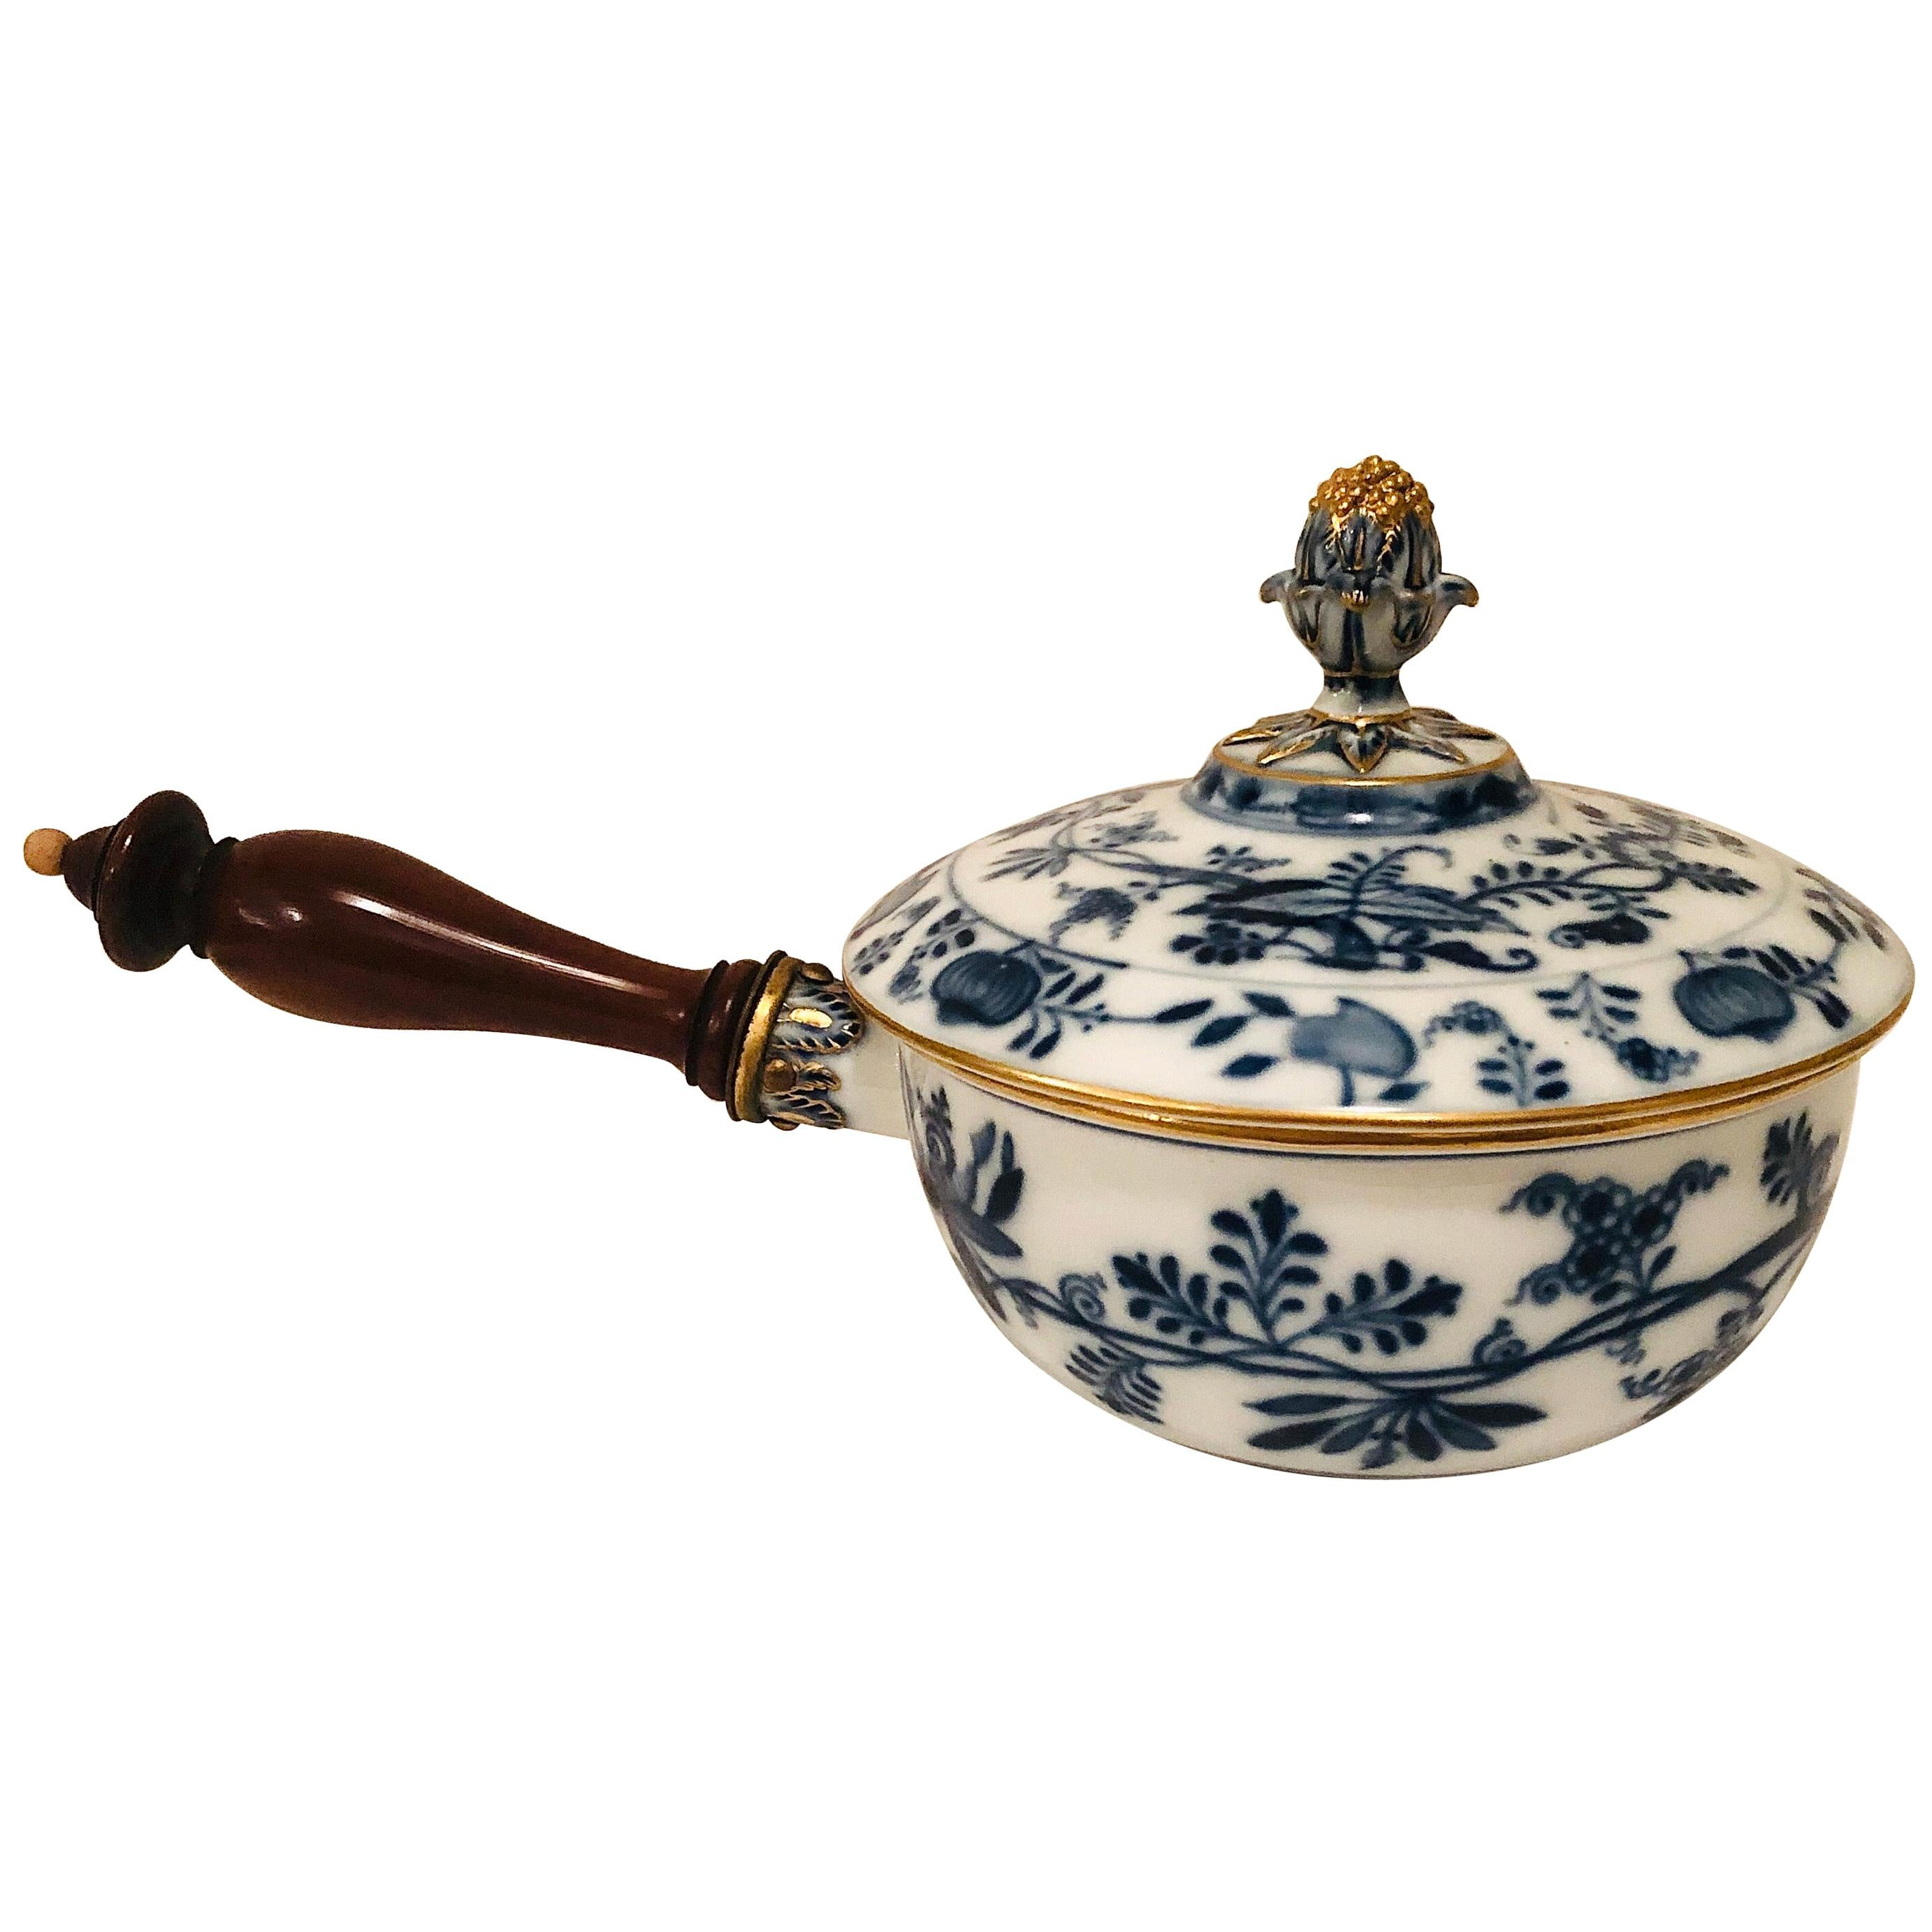 Meissen Blue Onion Covered Serving Bowl or Pot with Wooden Handle